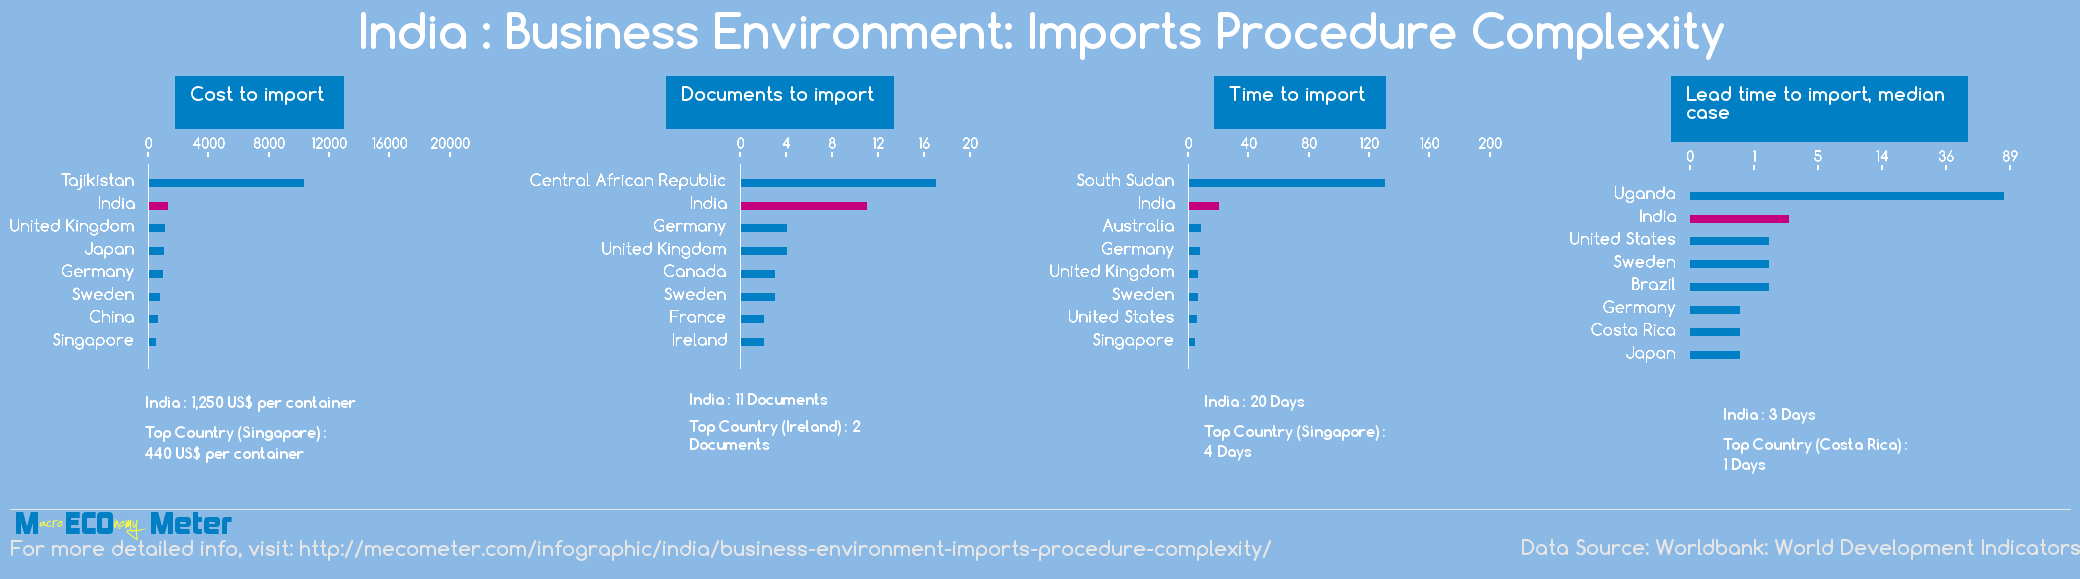 India : Business Environment: Imports Procedure Complexity